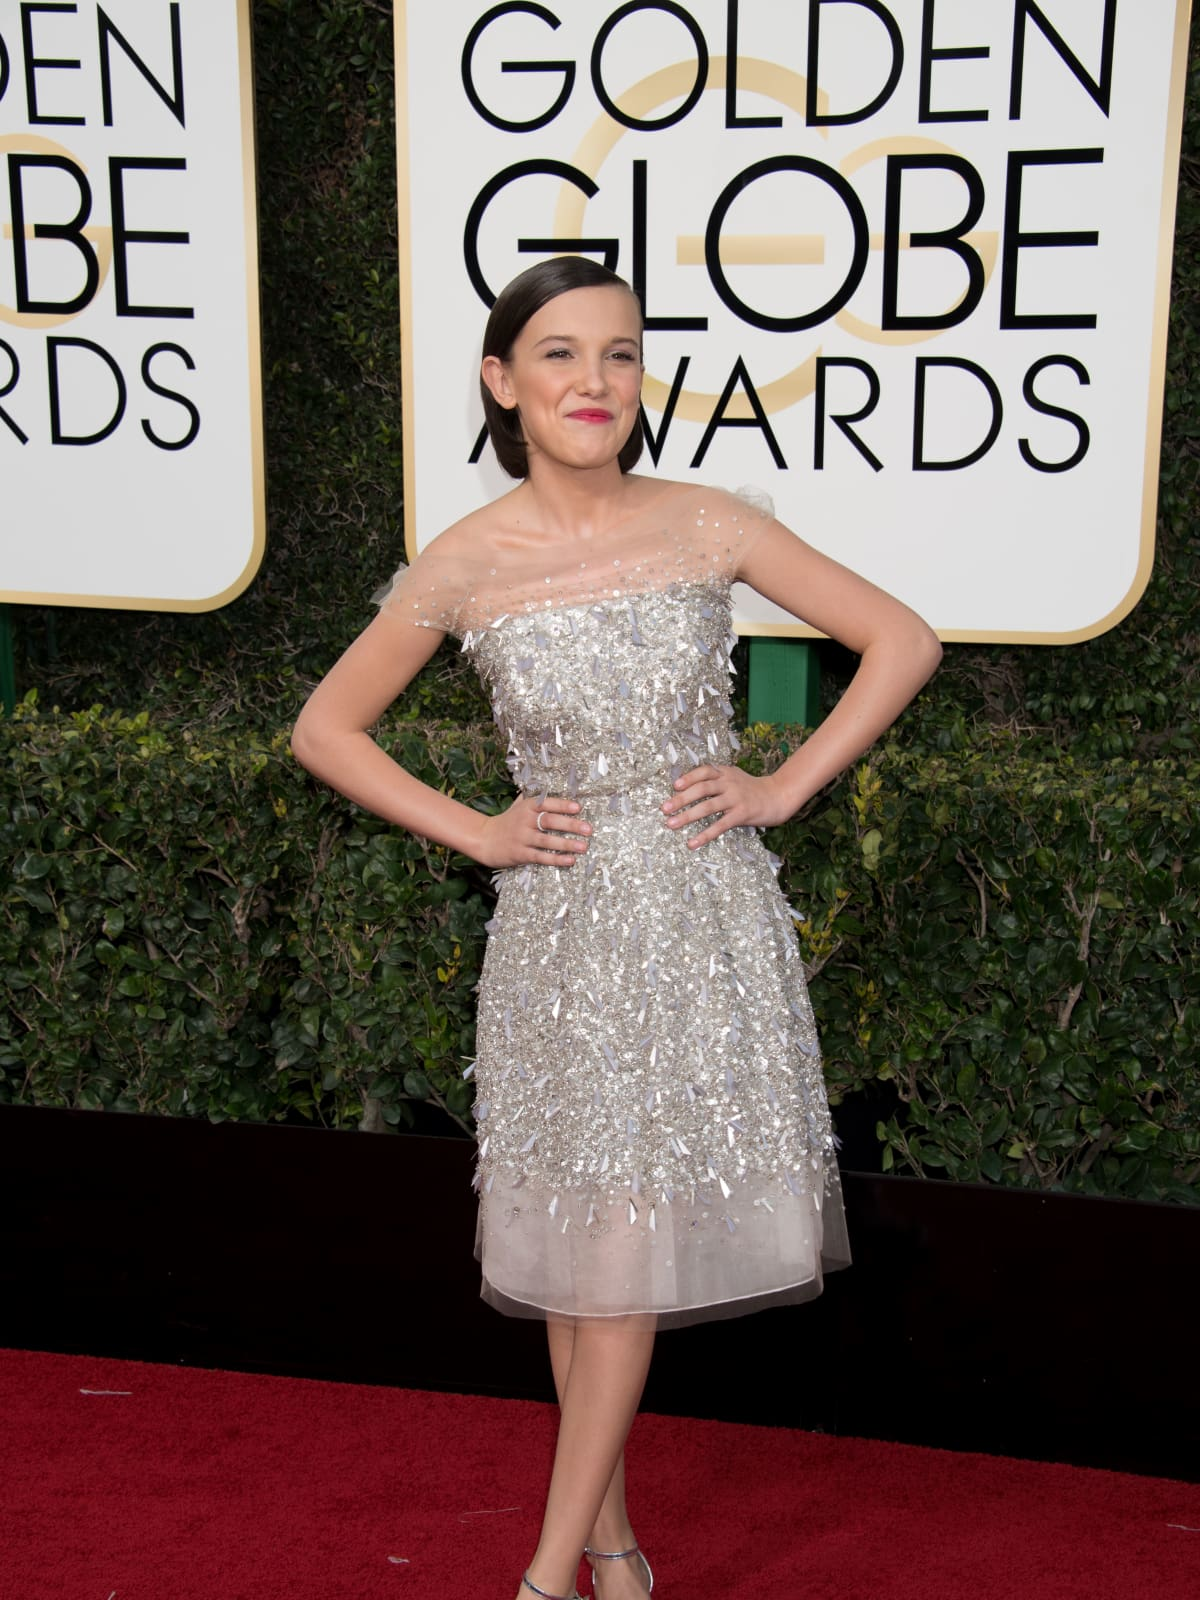 Millie Bobby Brown at Golden Globes 2017